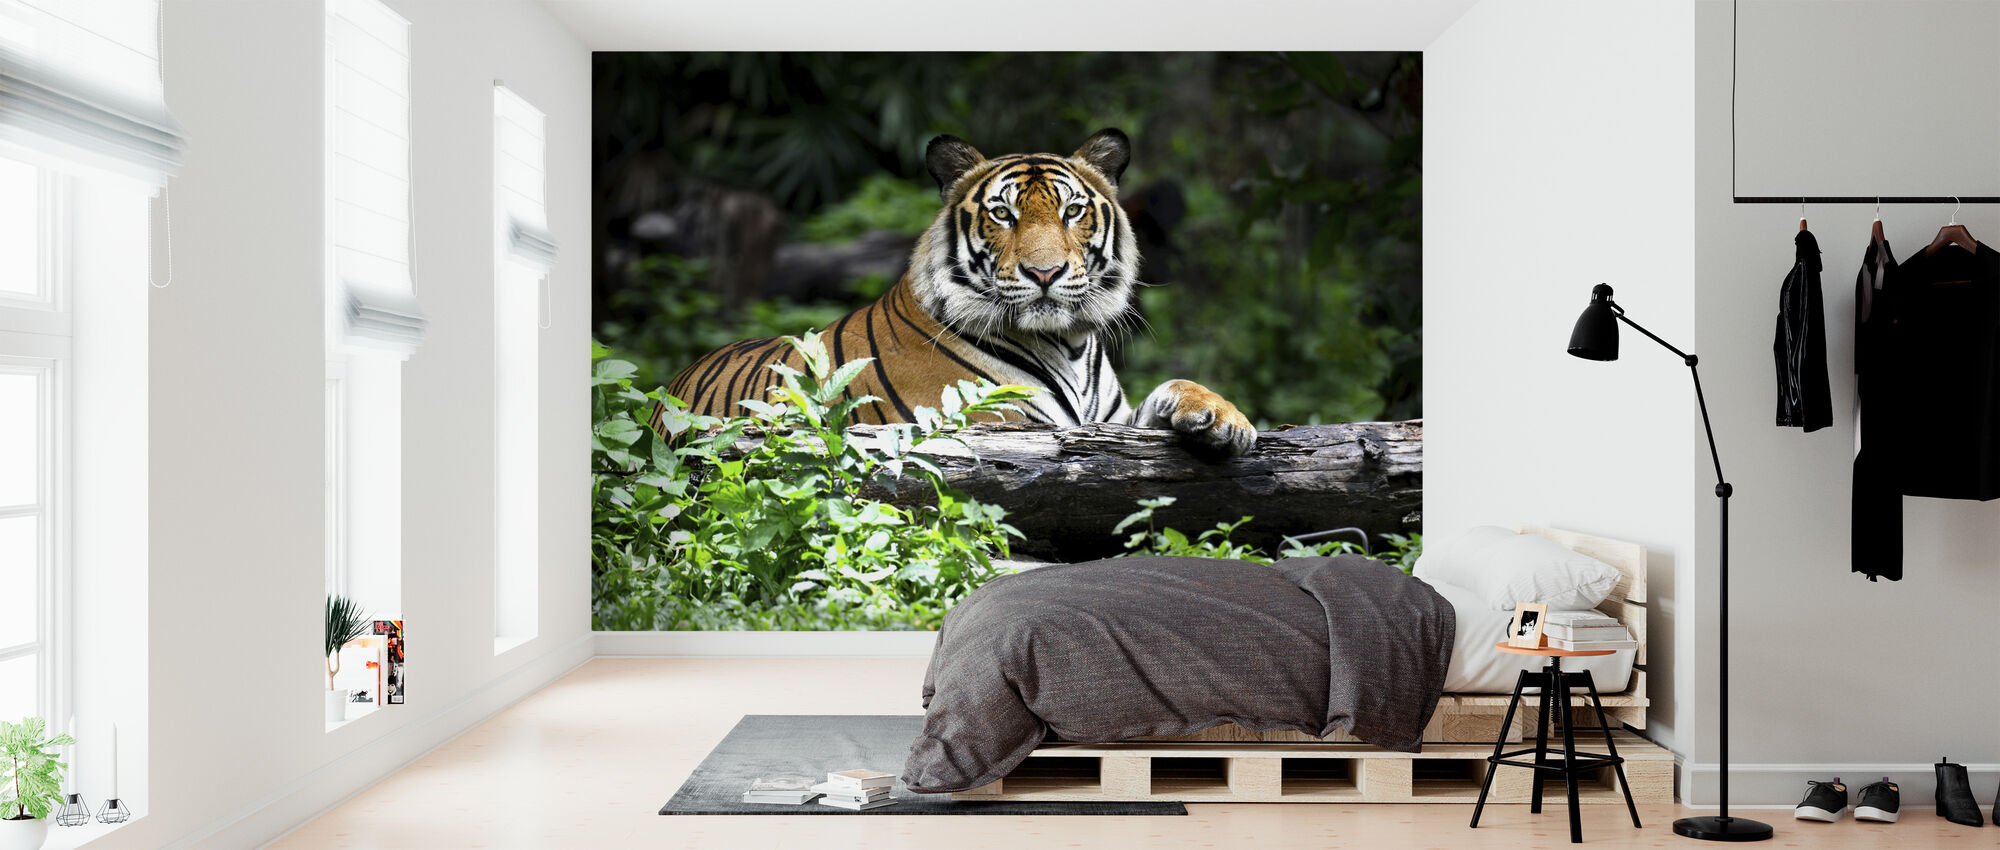 Bengal Tiger - Wallpaper - Bedroom